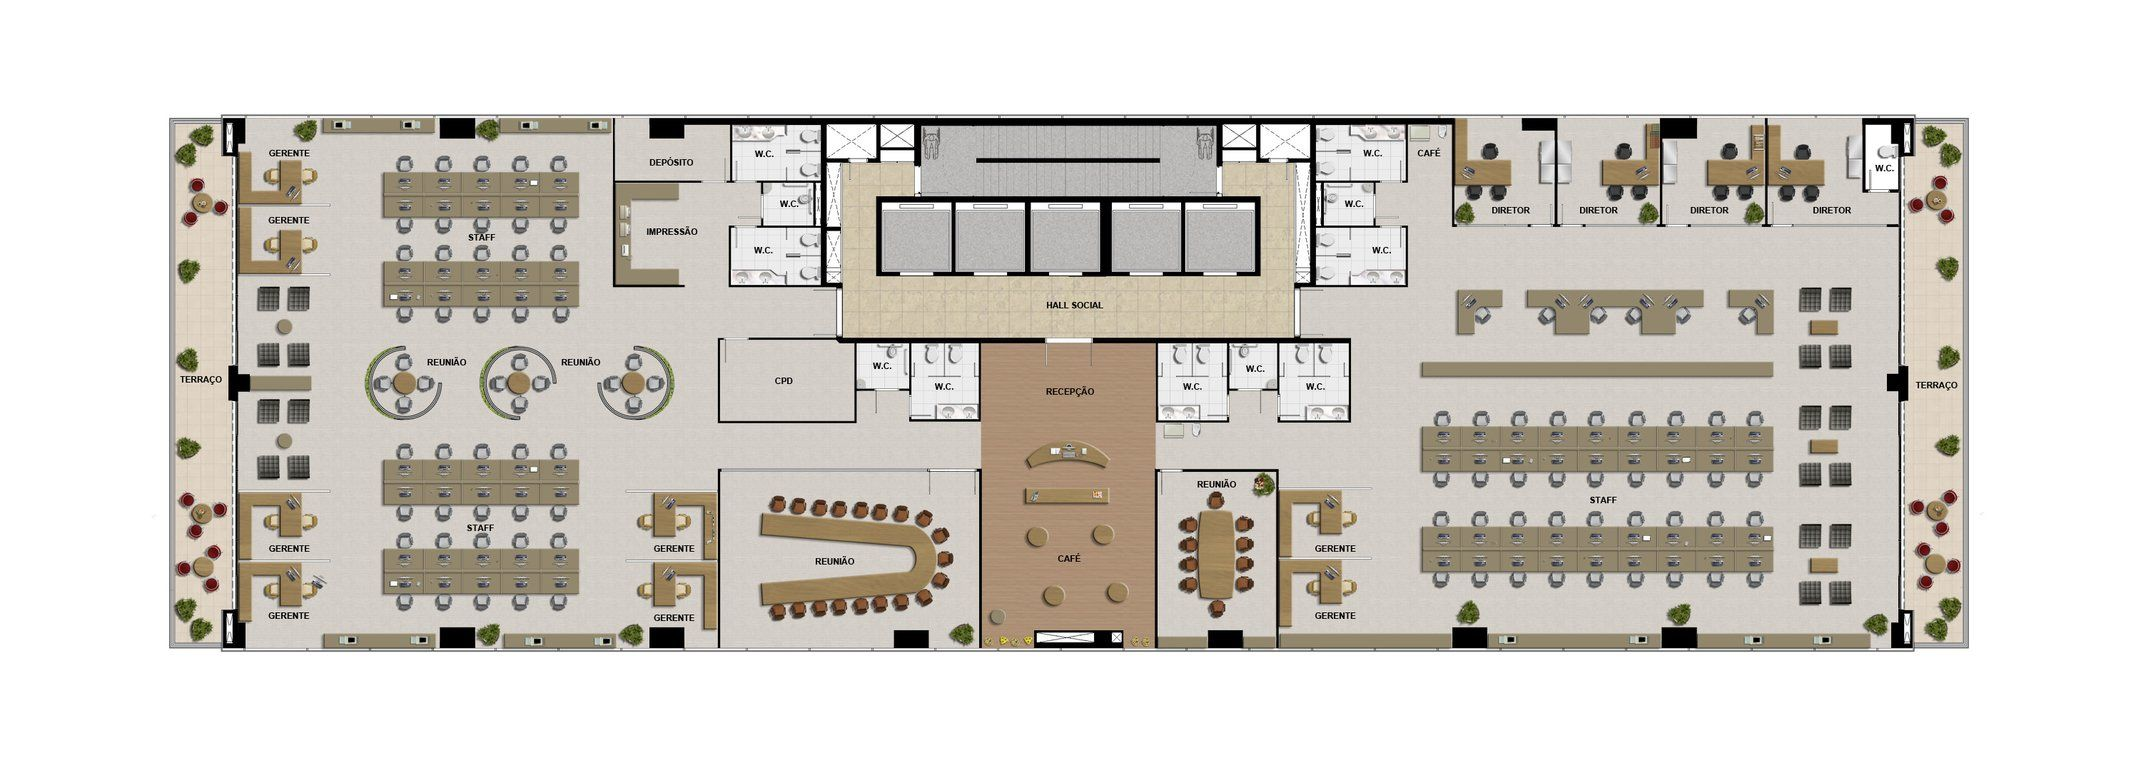 OFFICE FLOOR PLAN Recherche Google Design intrieur 2 PF